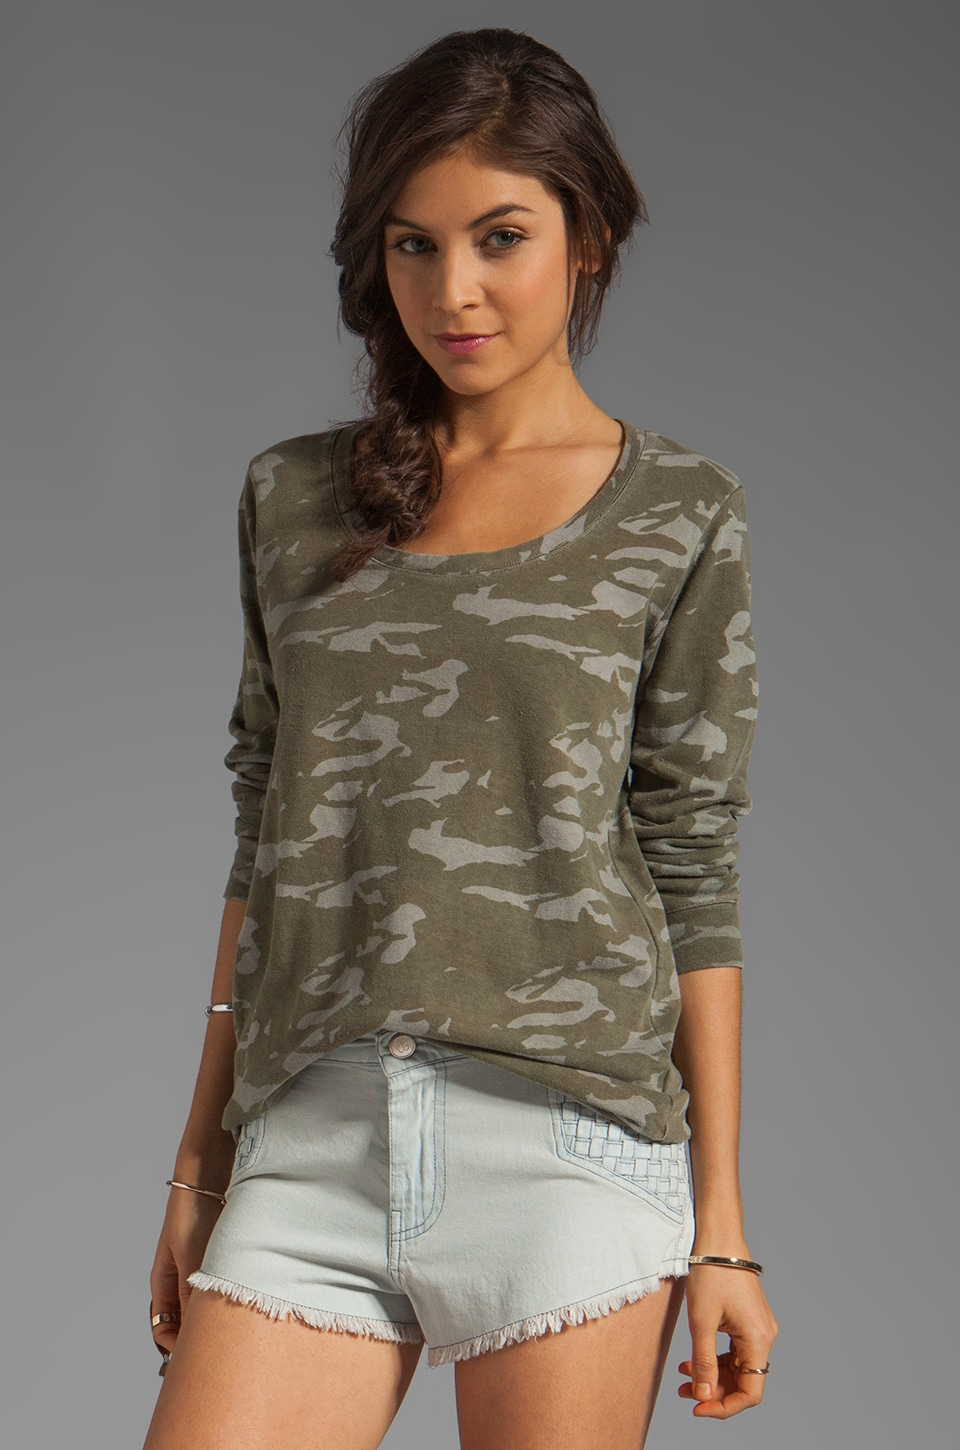 MONROW Camo Print Boyfriend Sweatshirt in Army/Green